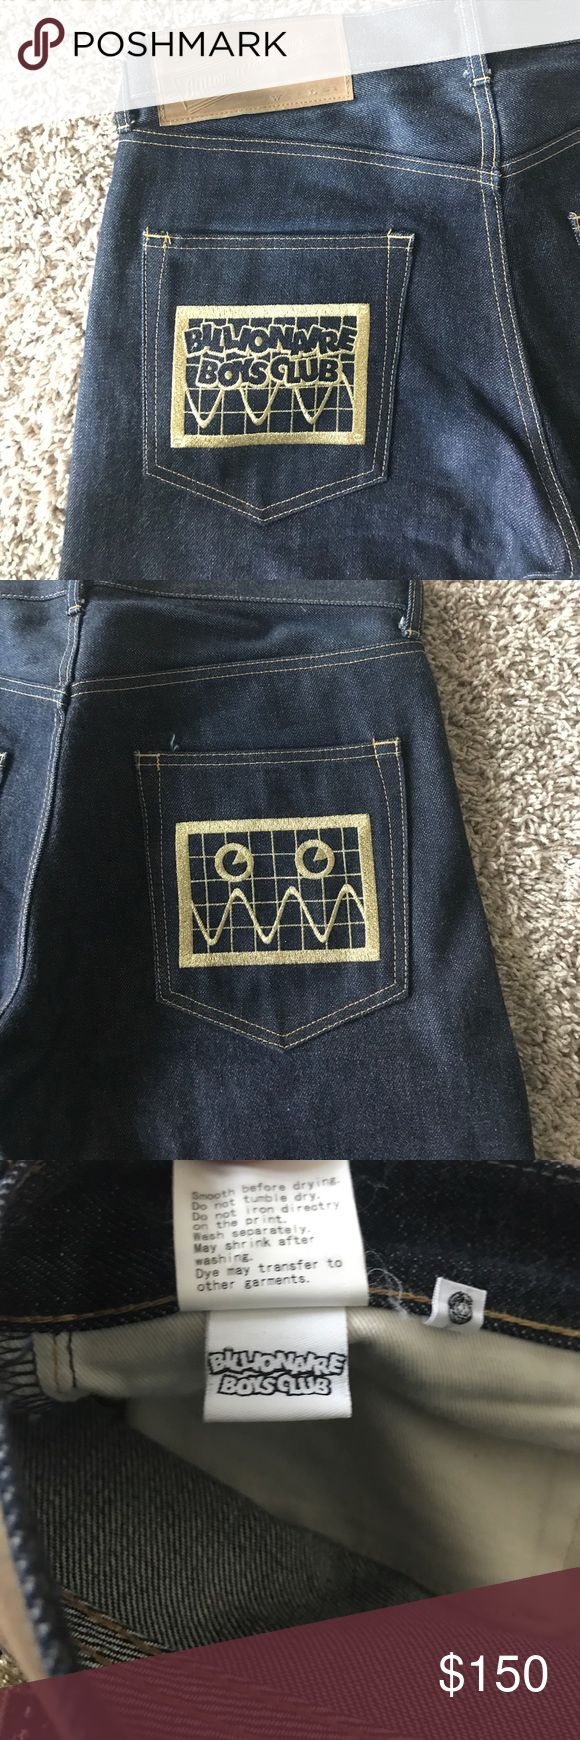 Billionaire Boys Club Jeans. Men's Authentic BBC jeans. Worn But Not Abused. Fit is normal and not skinny. Billionaire Boys Club Jeans Straight